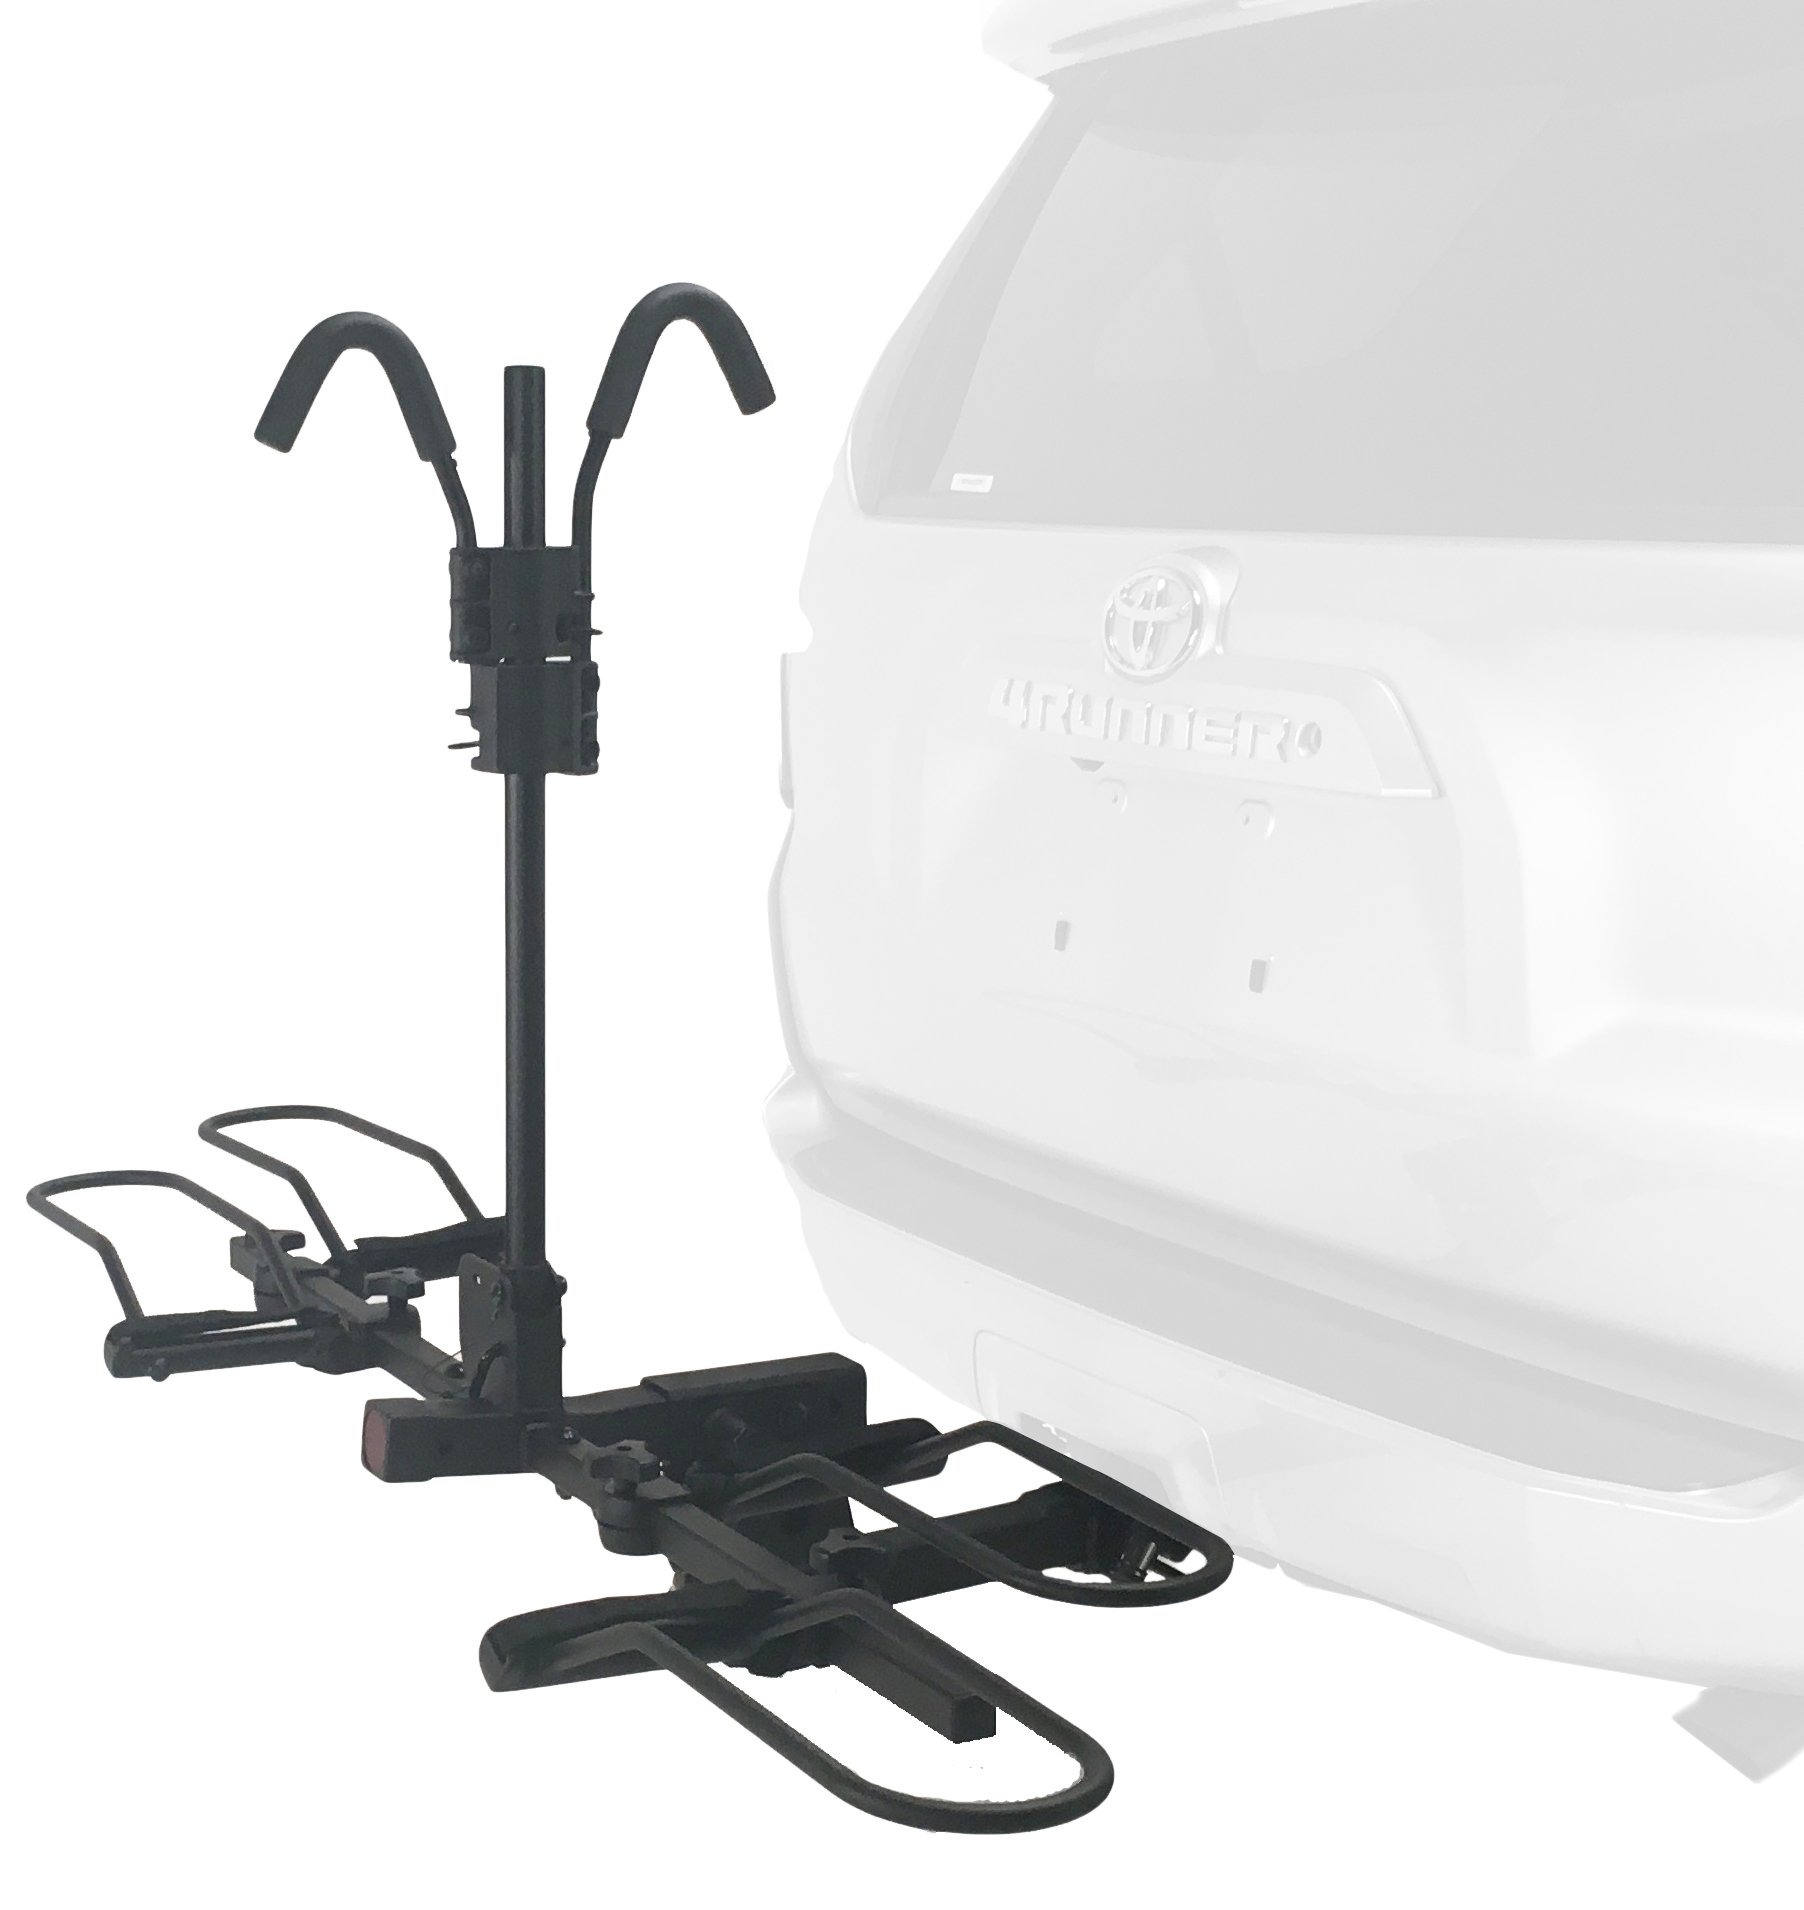 Hollywood Racks Sportrider Rack for Electric Bikes